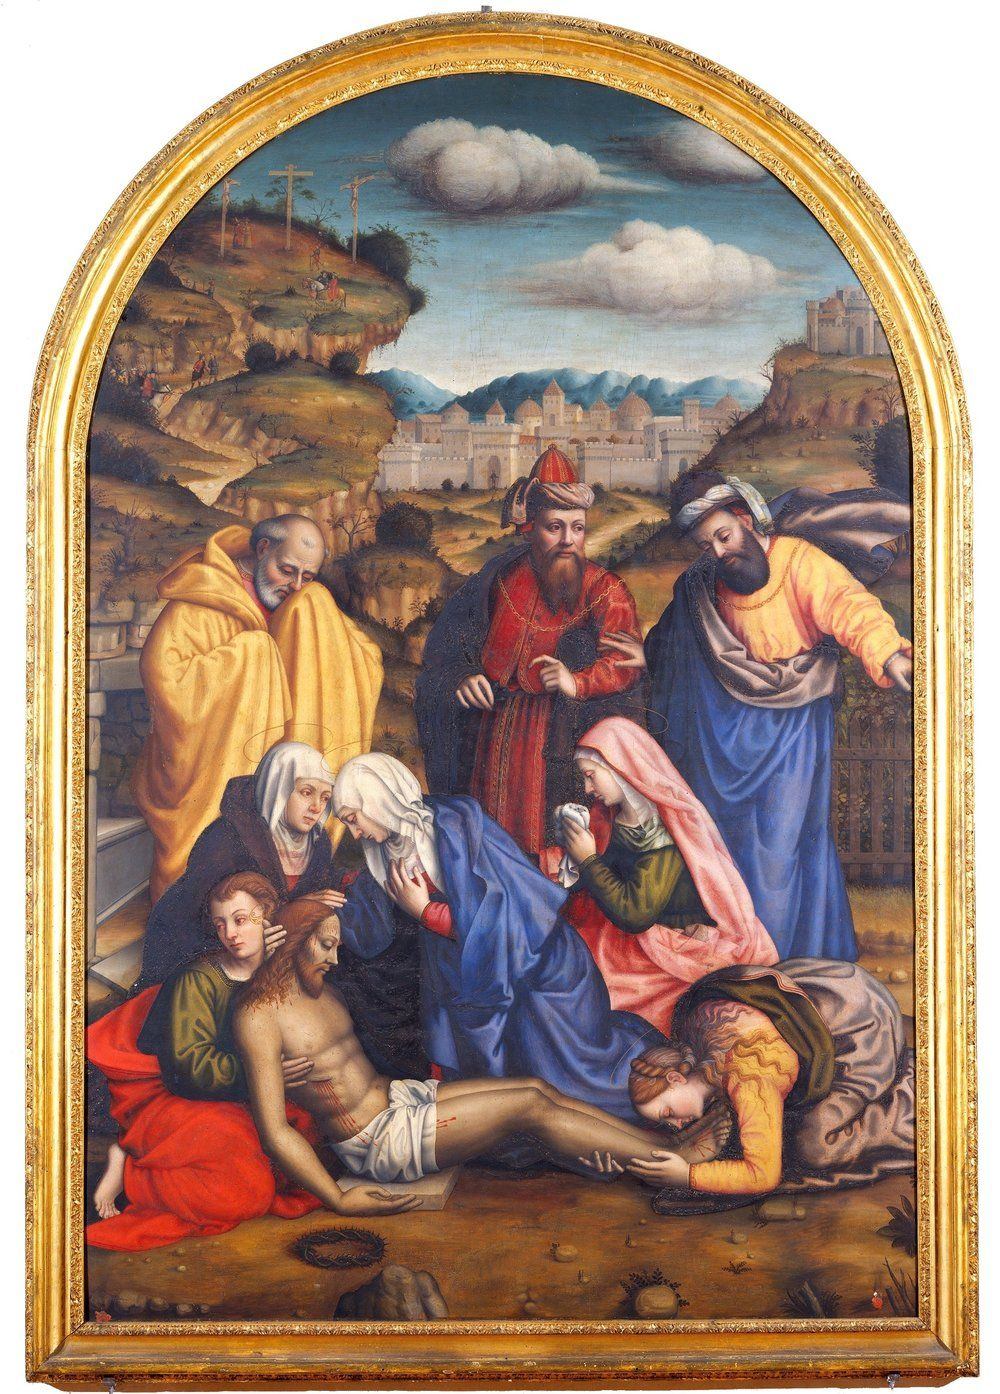 Lamentation with Saints, restored 2006